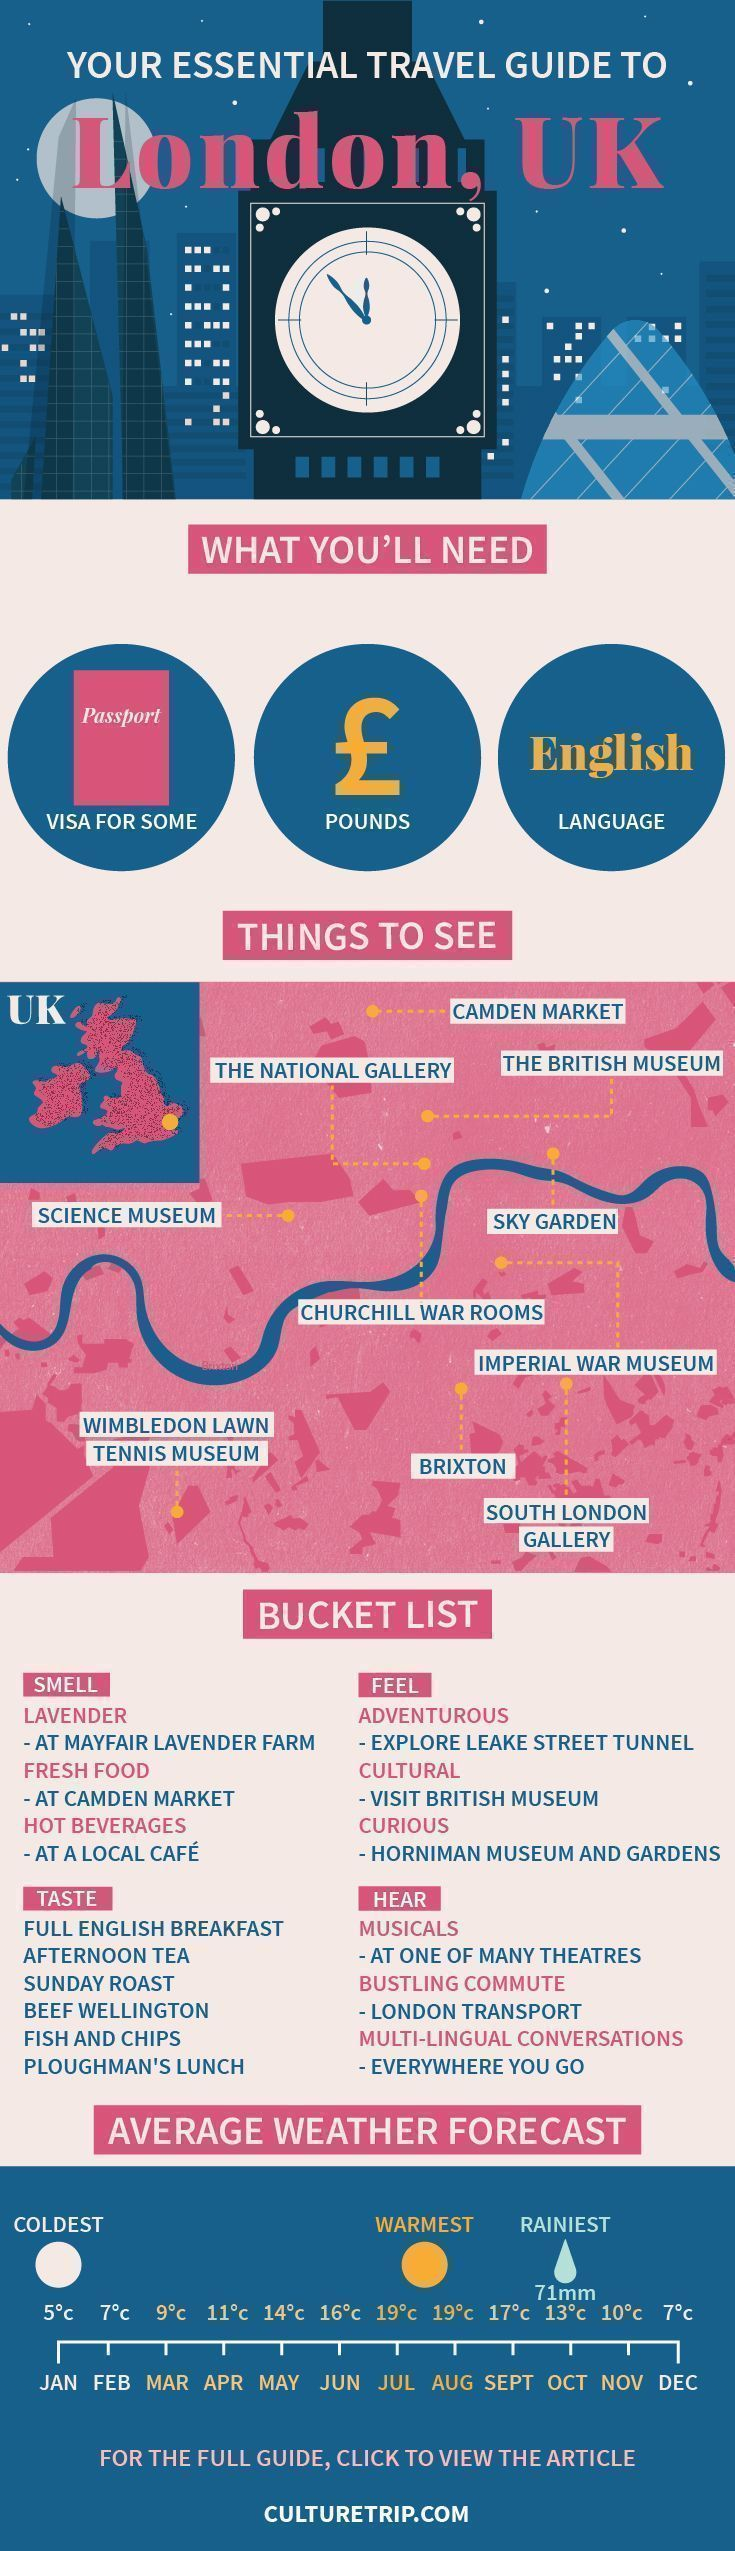 Your Essential Travel Guide to London (Infographic) | London, England, weekend break, Europe, bucket list, wanderlust, adventure, challenge, coffee, bar, food, must try, Summer, United Kingdom, UK #travelinfographic #londontravel #travelingeurope